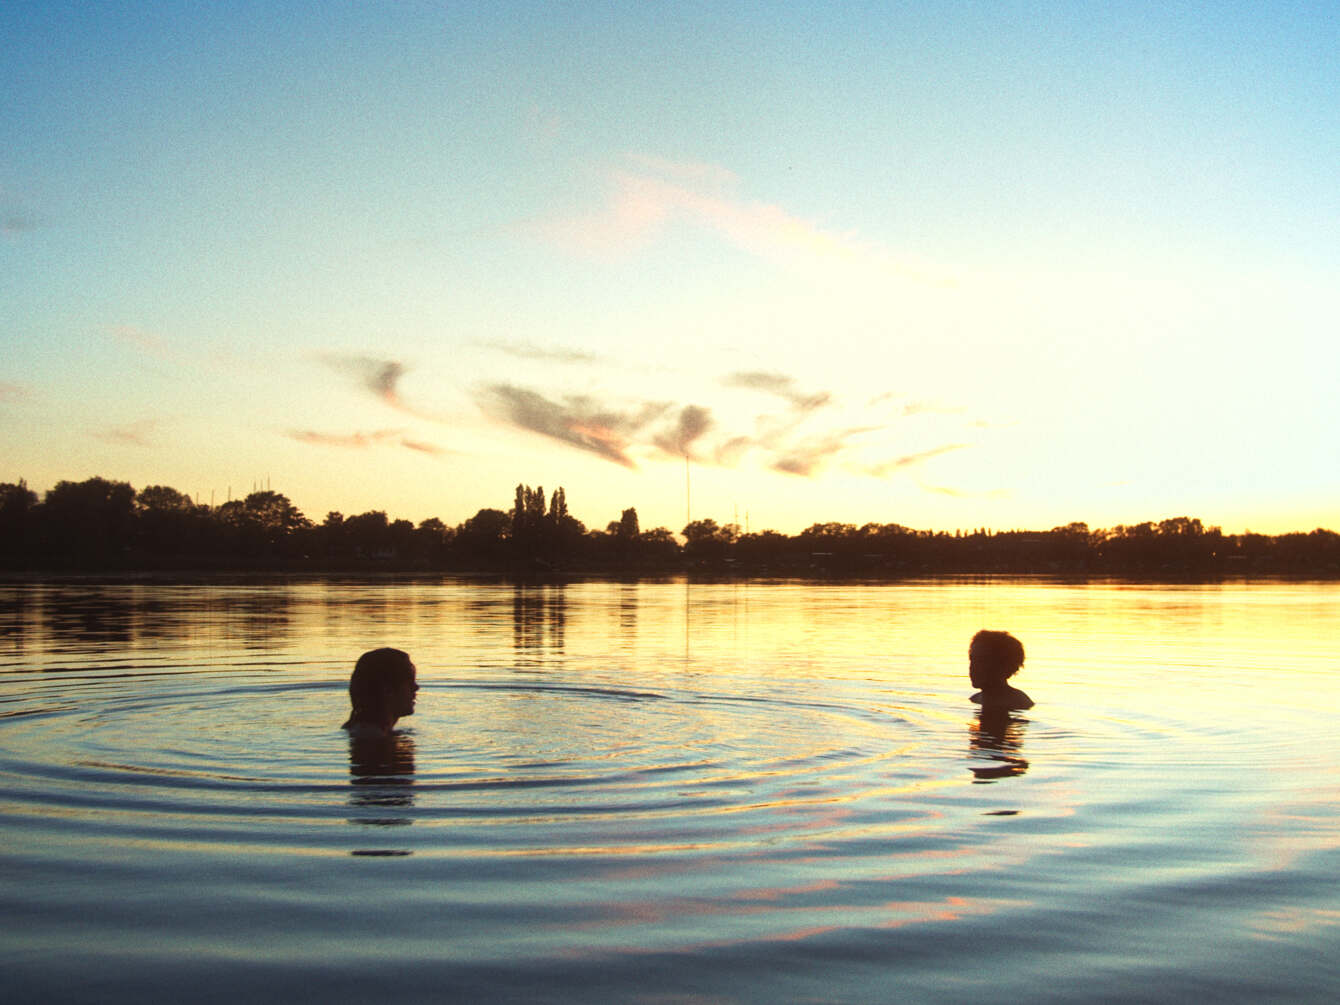 Still from Incendios. A wide shot of the two boys in a lake, facing each other with some distance in between them. The sun is setting.